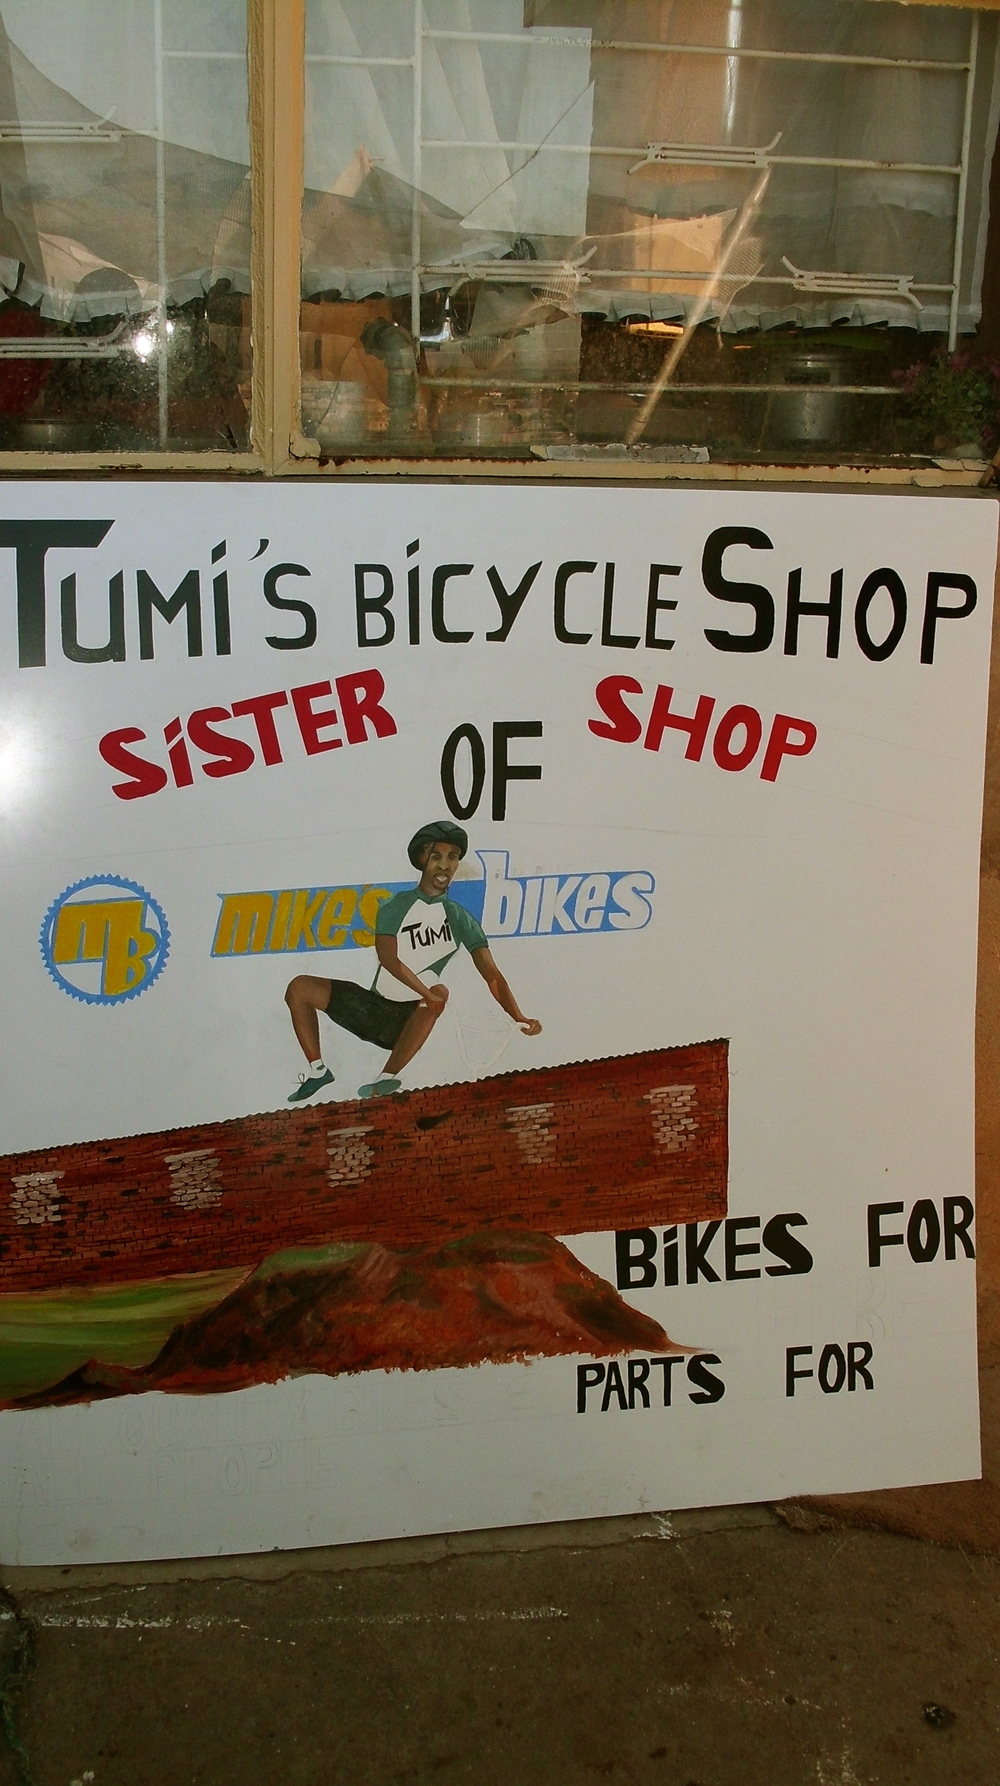 Tumi's Bicycle Shop